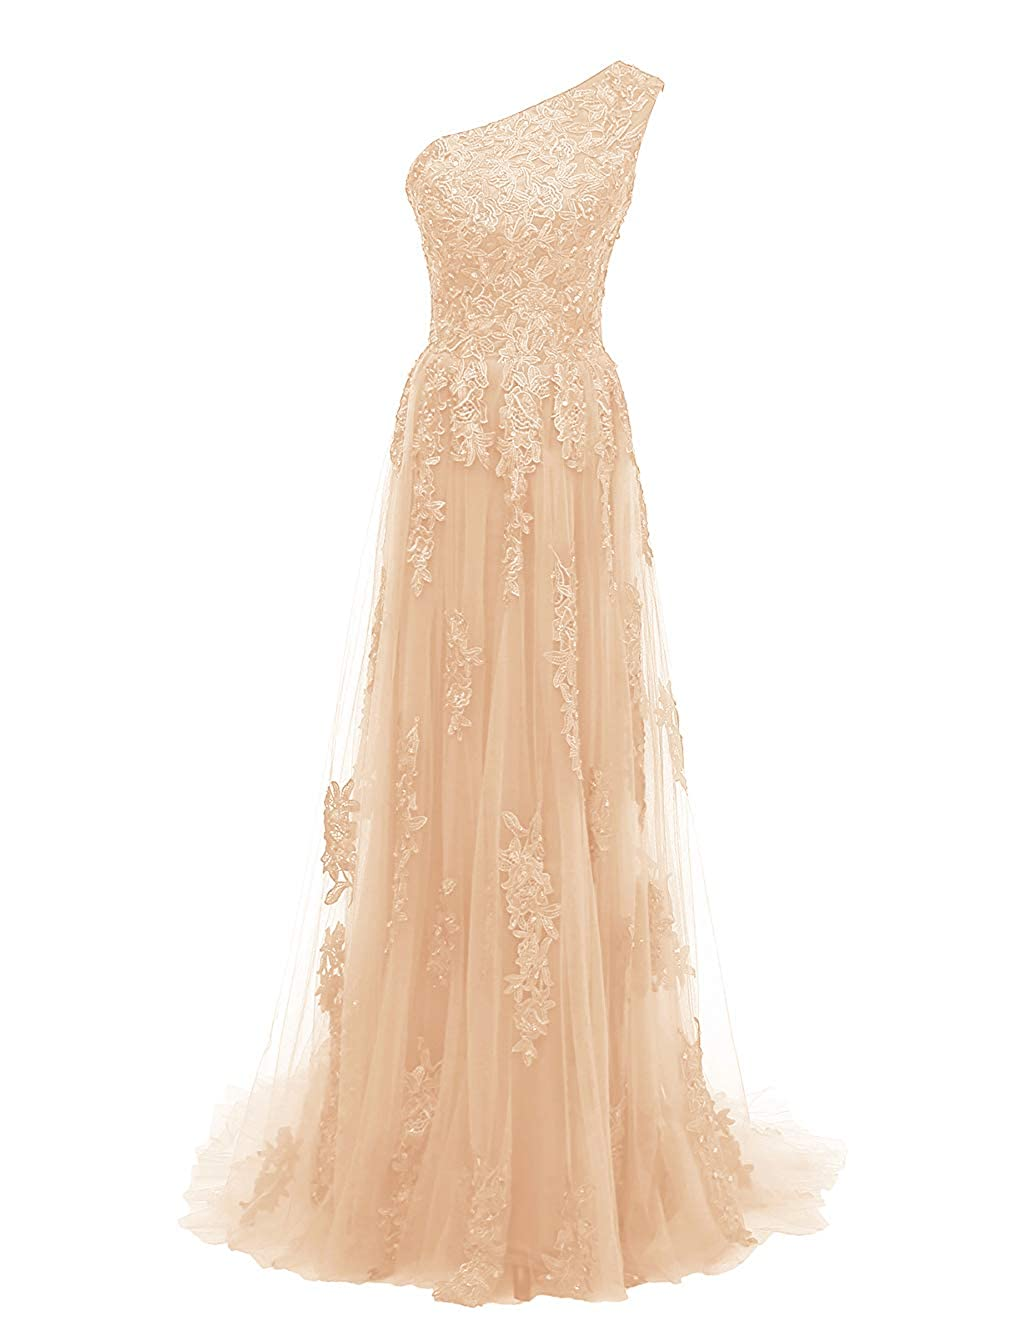 Champagne Uther One Shoulder Evening Party Gowns Lace Appliques Women's Formal Long Prom Dresses